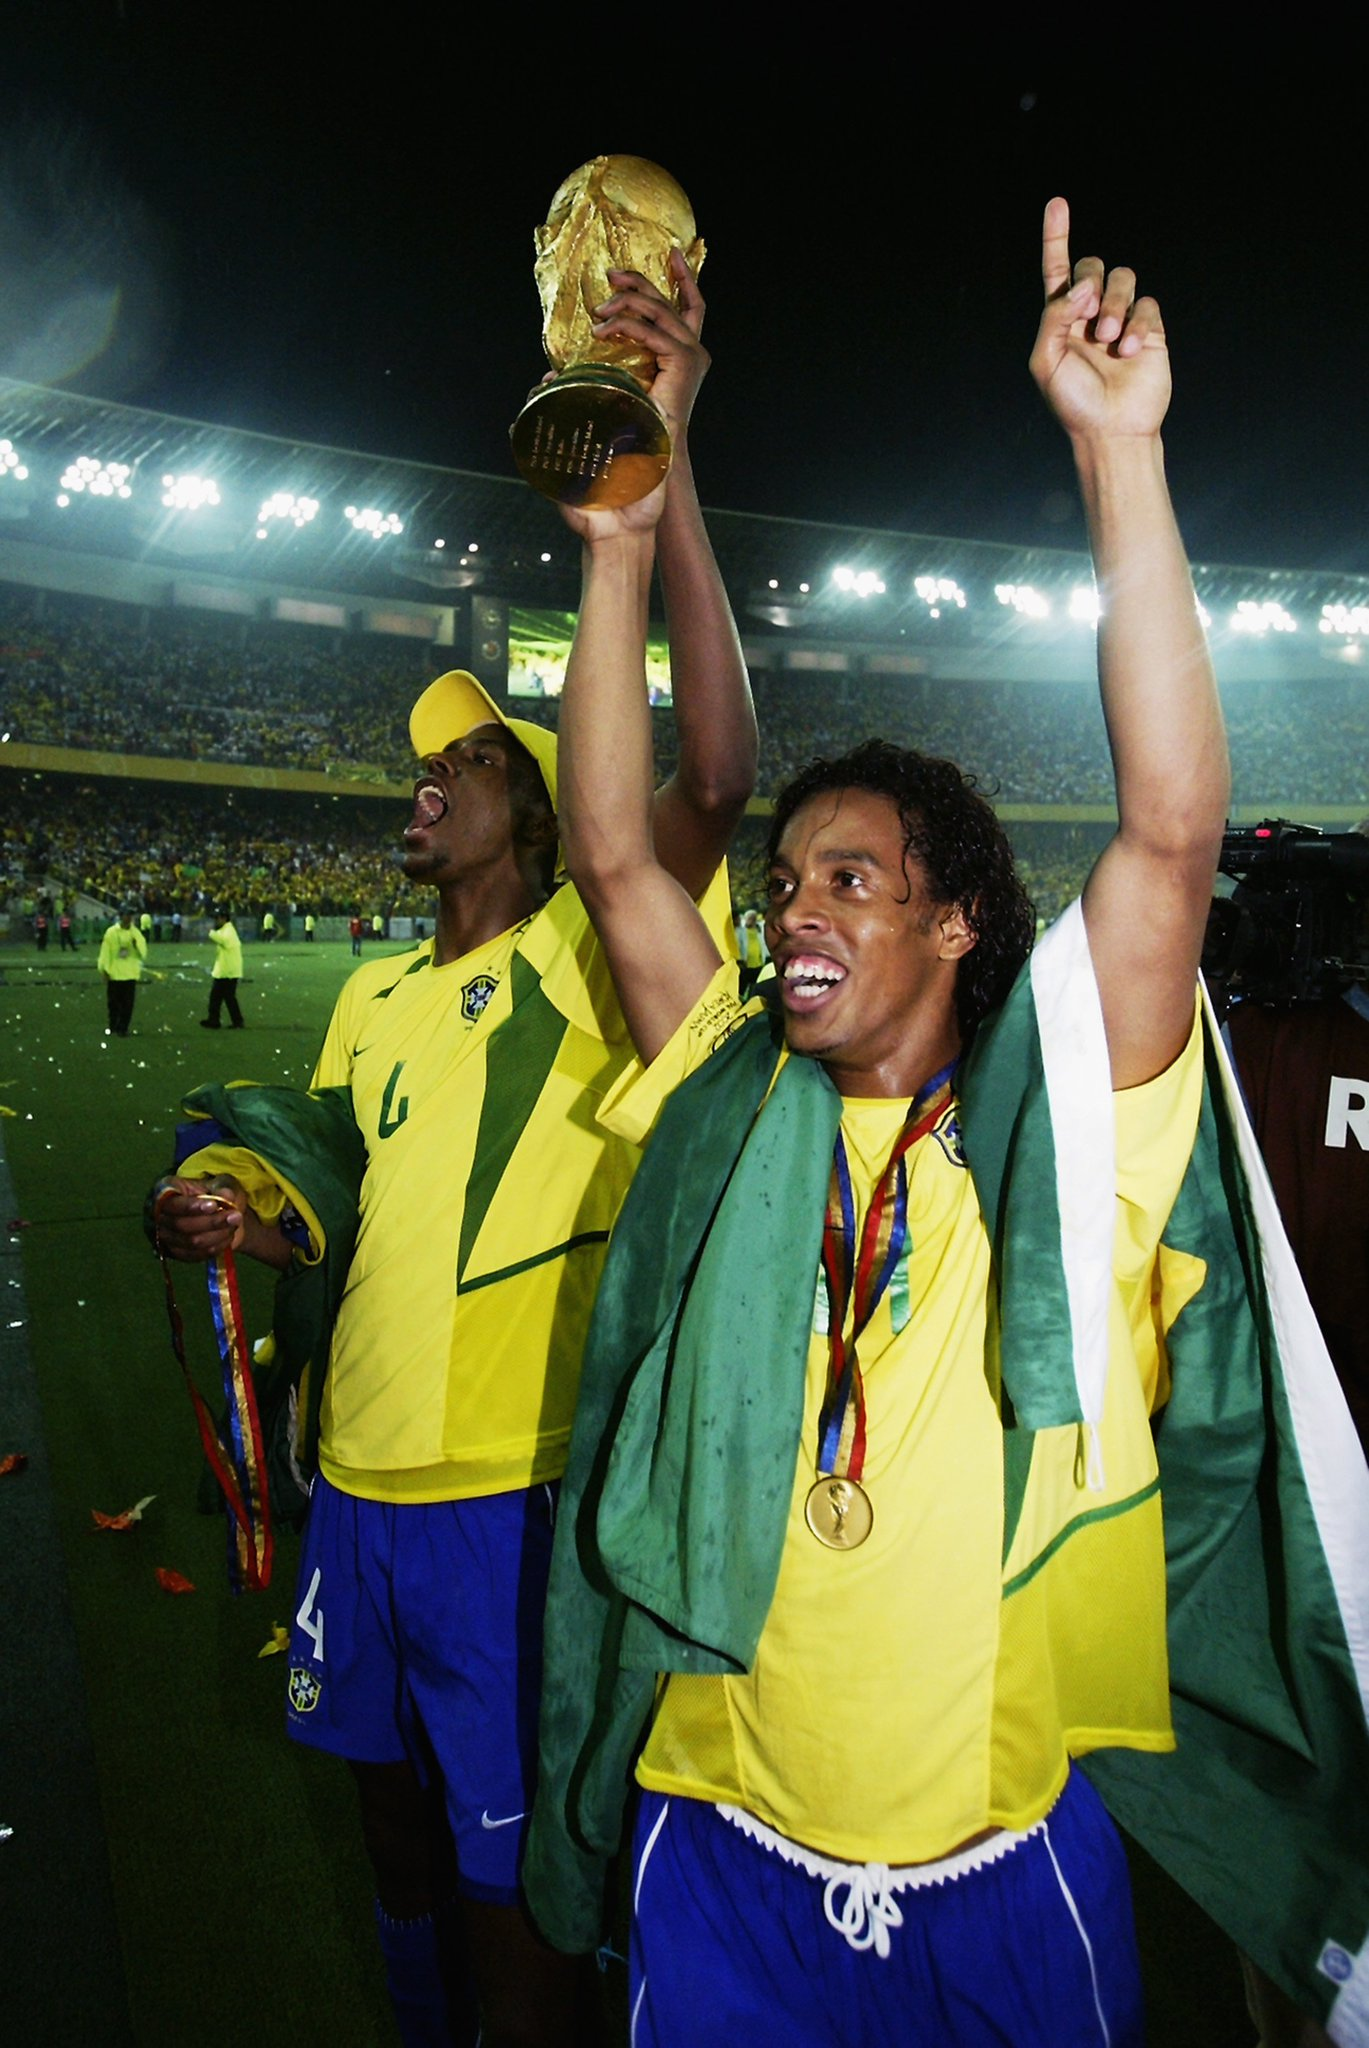 Ronaldinho ����  ✅ 2006 #UCL  ✅ 2002 #WorldCup   #ThrowbackThursday https://t.co/dK3qRo8kca